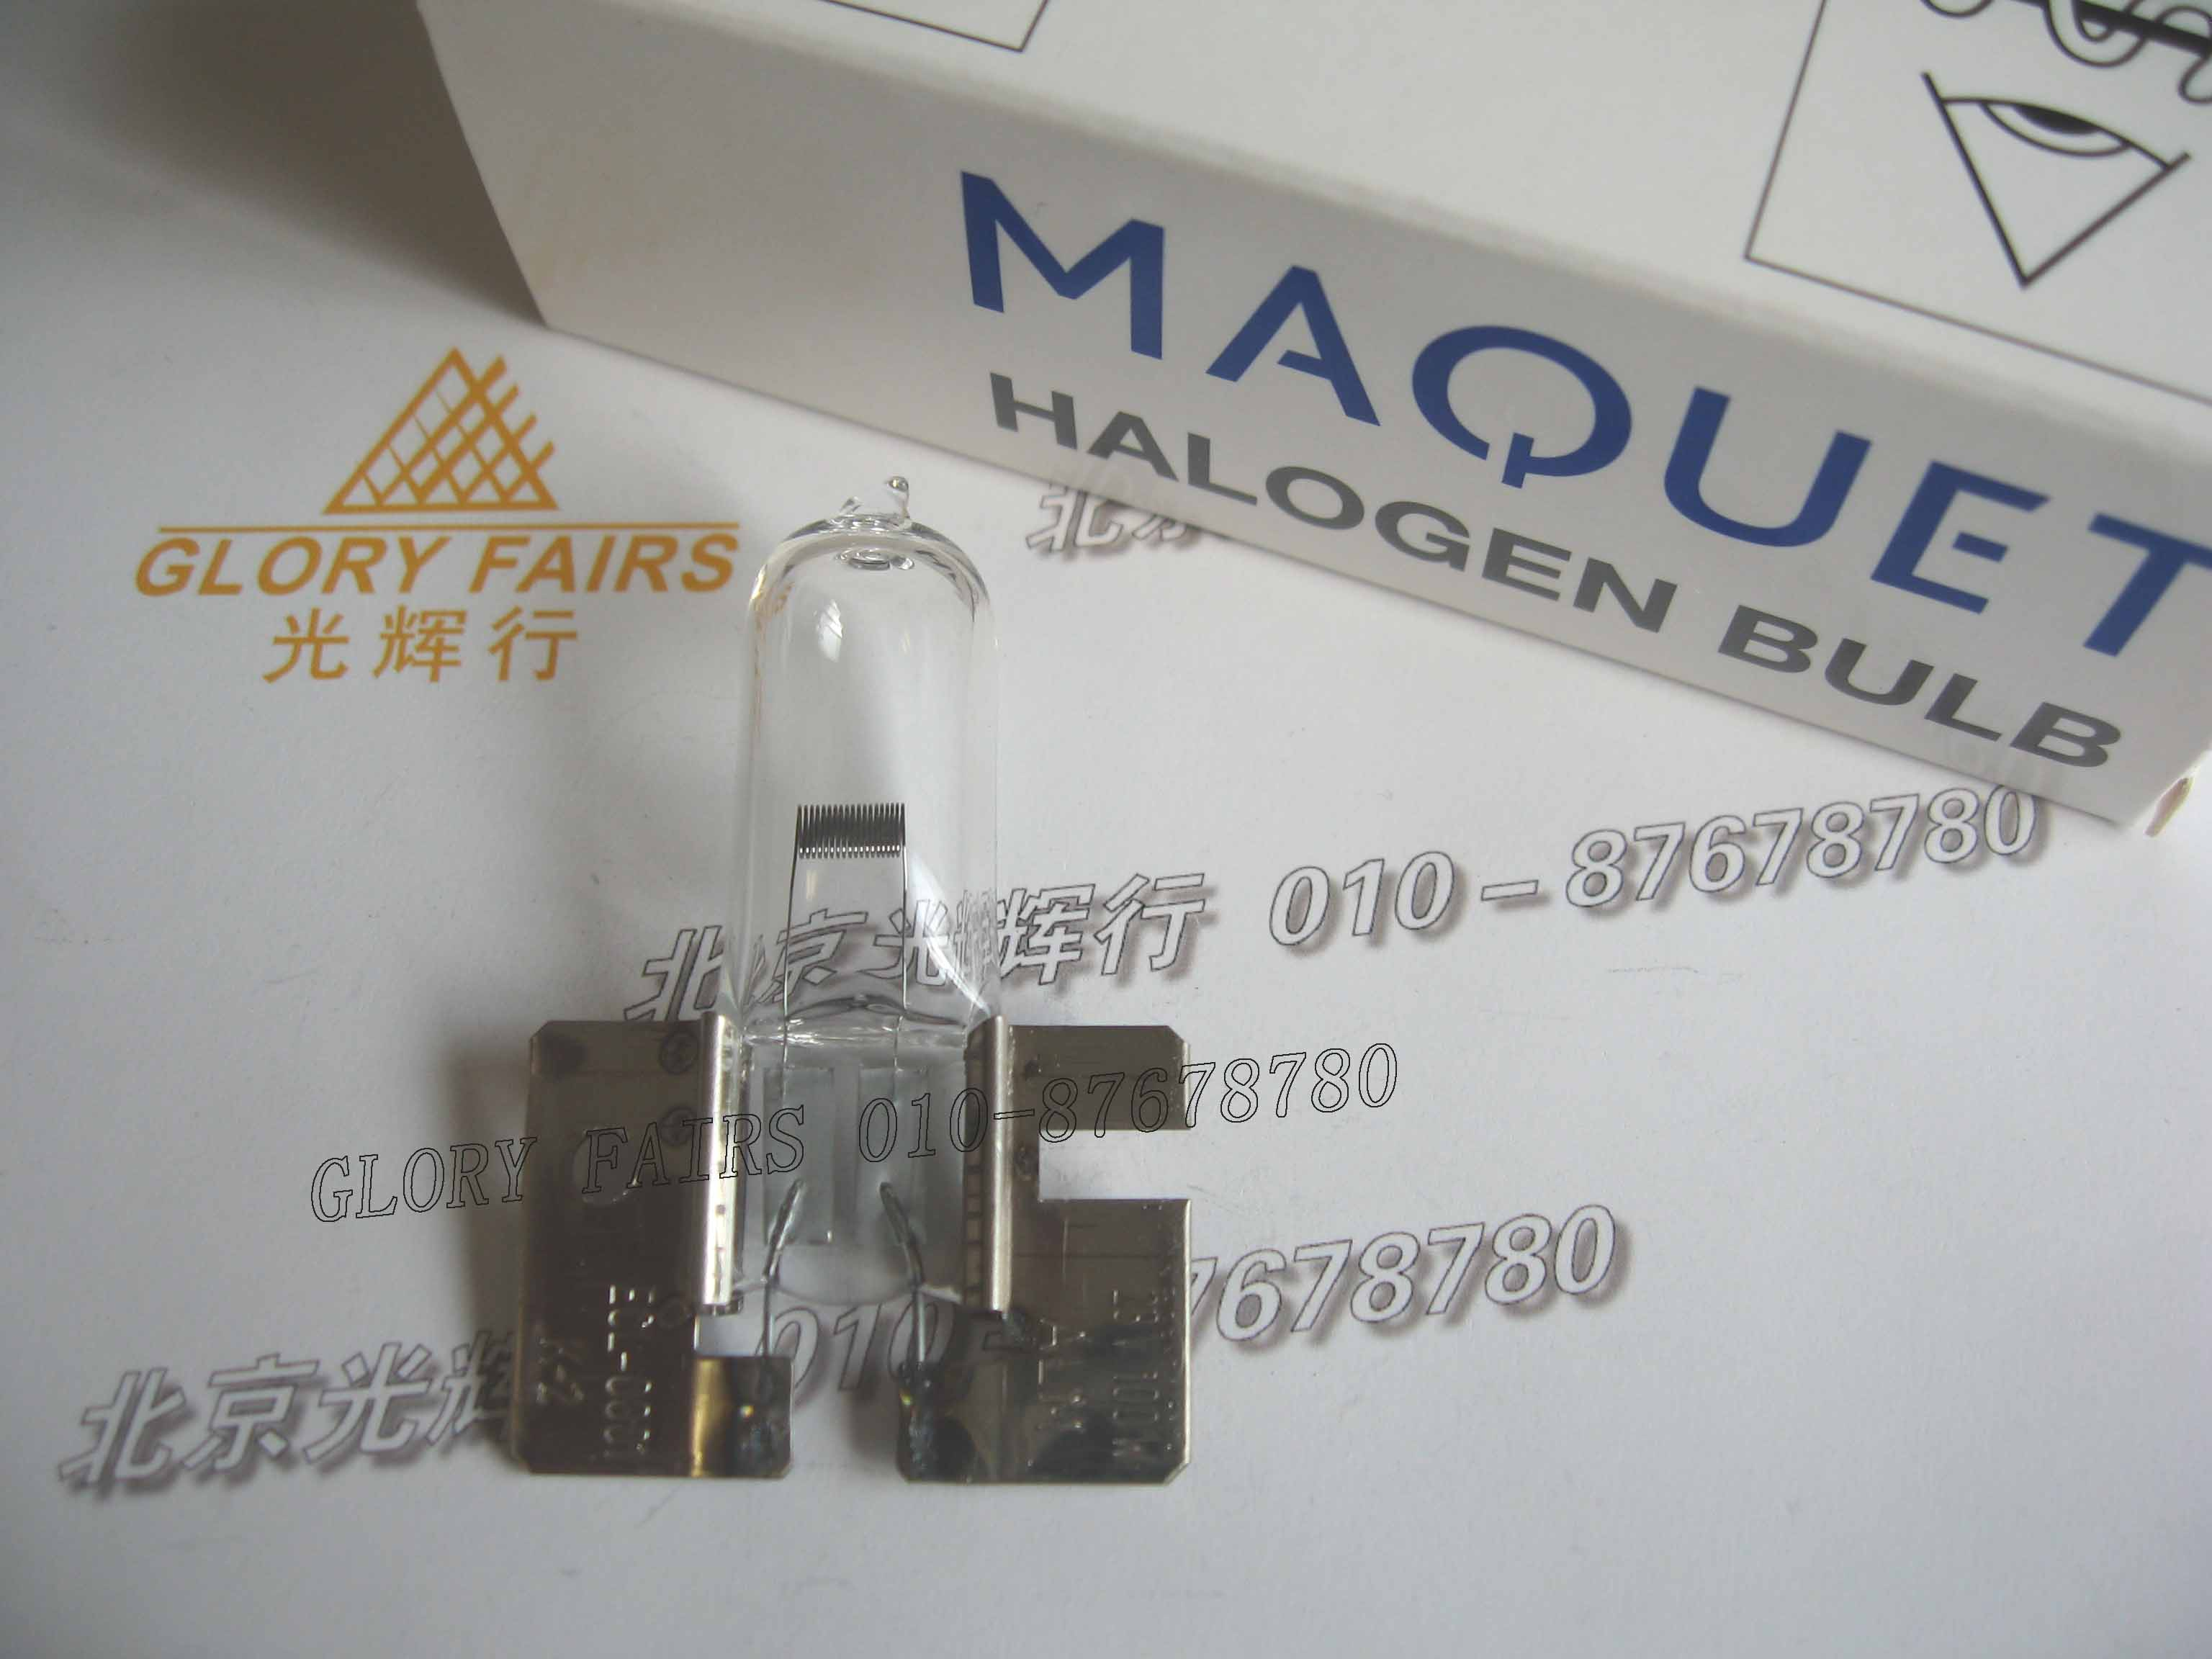 Maquet Exam Lights Related Keywords & Suggestions - Maquet